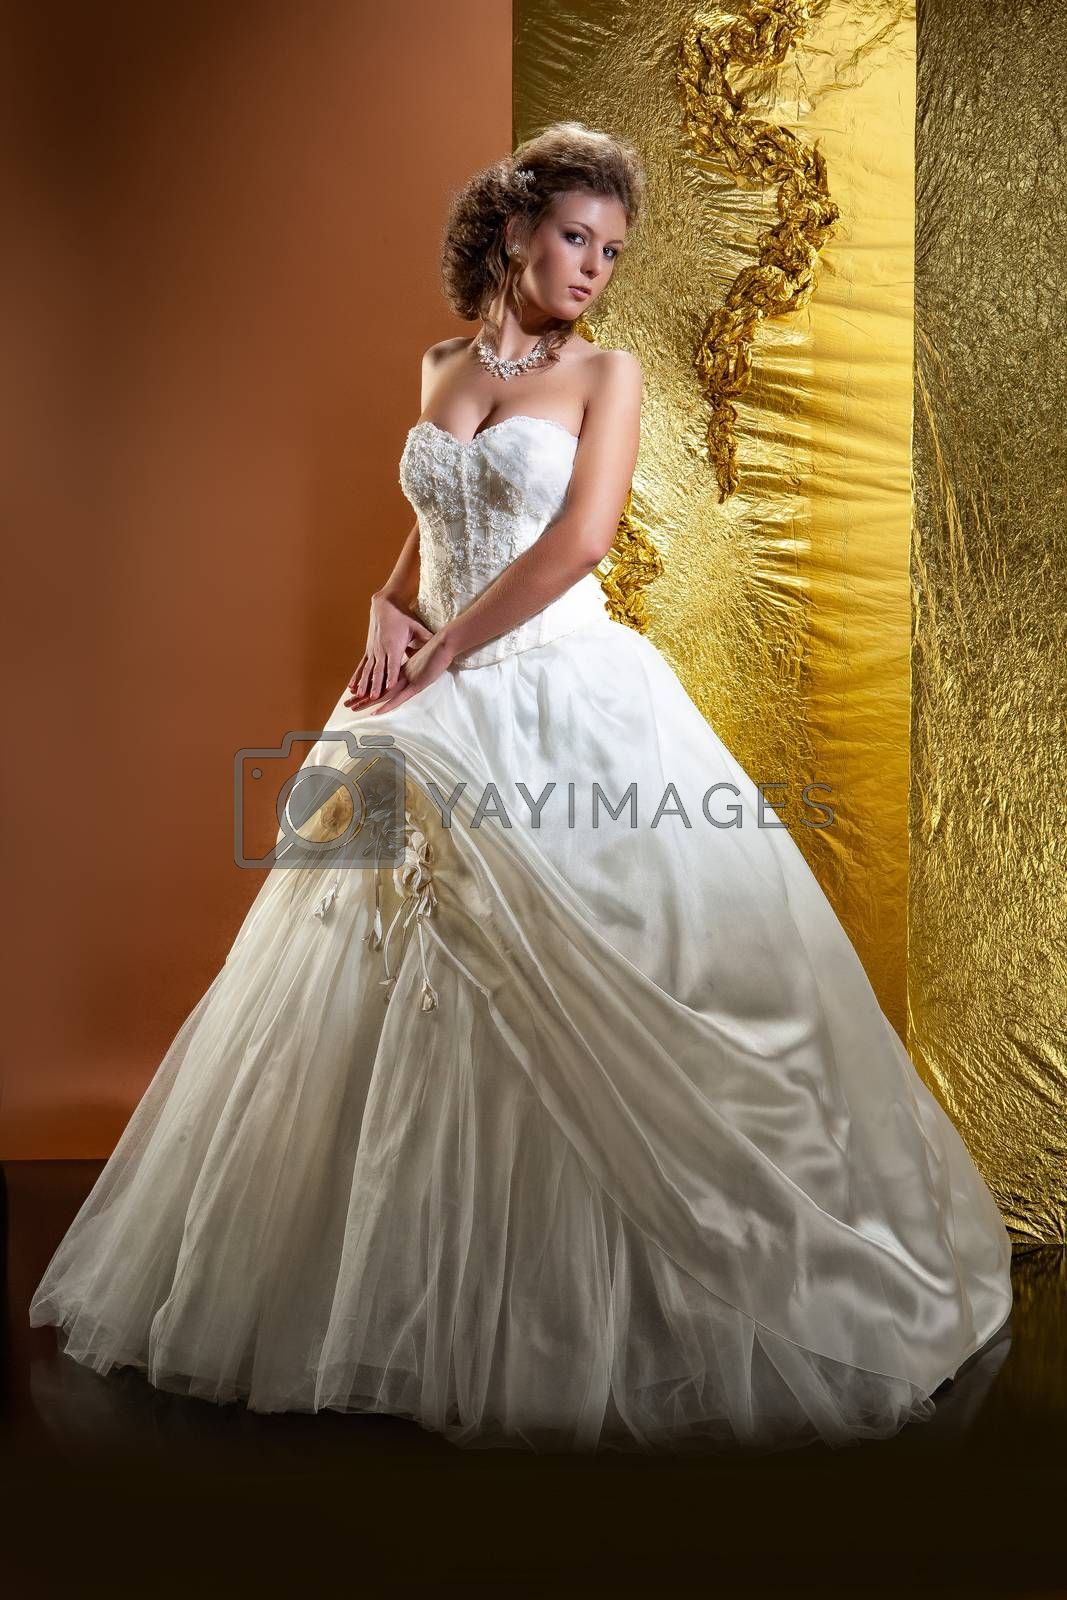 Young woman in a wedding dress on a studio background